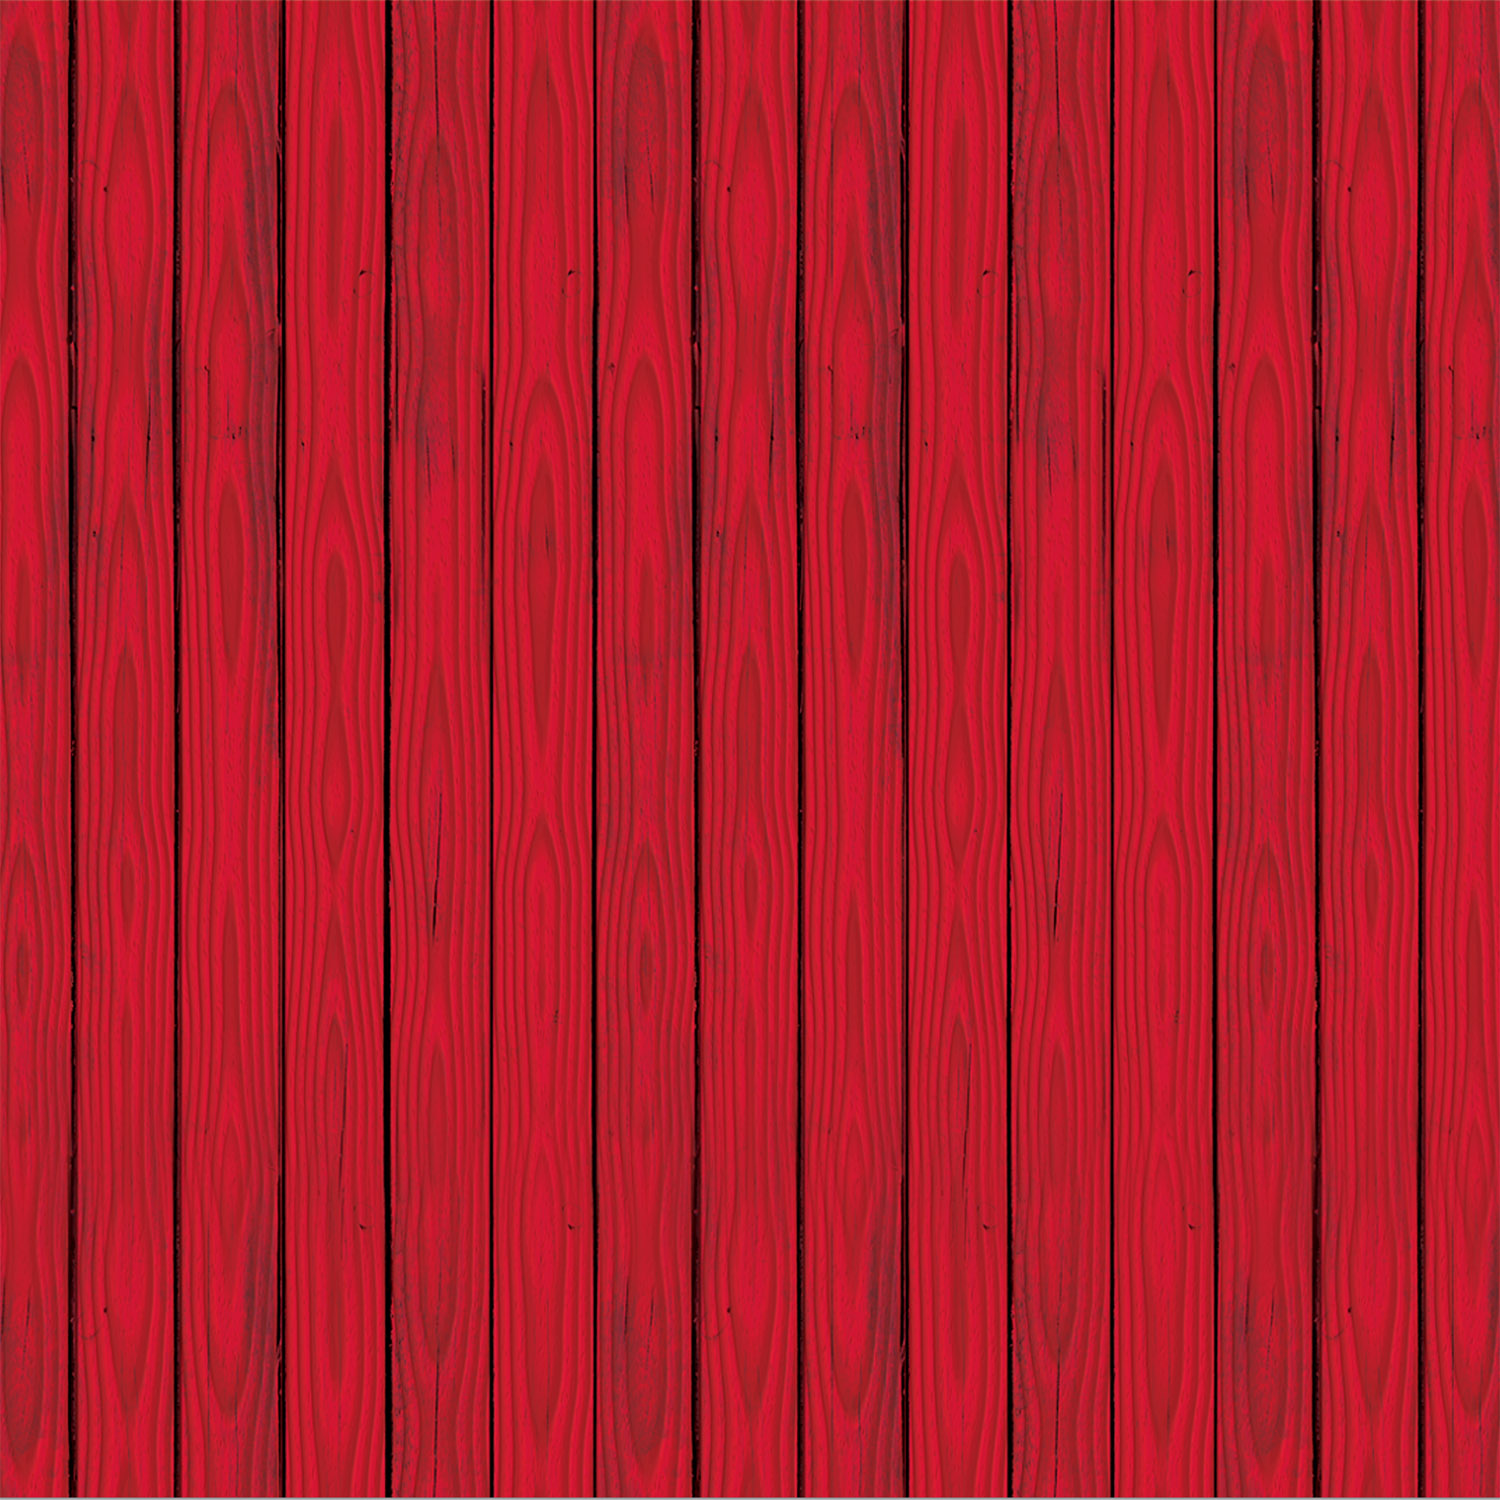 Red Barn Siding Backdrop (Pack of 6)